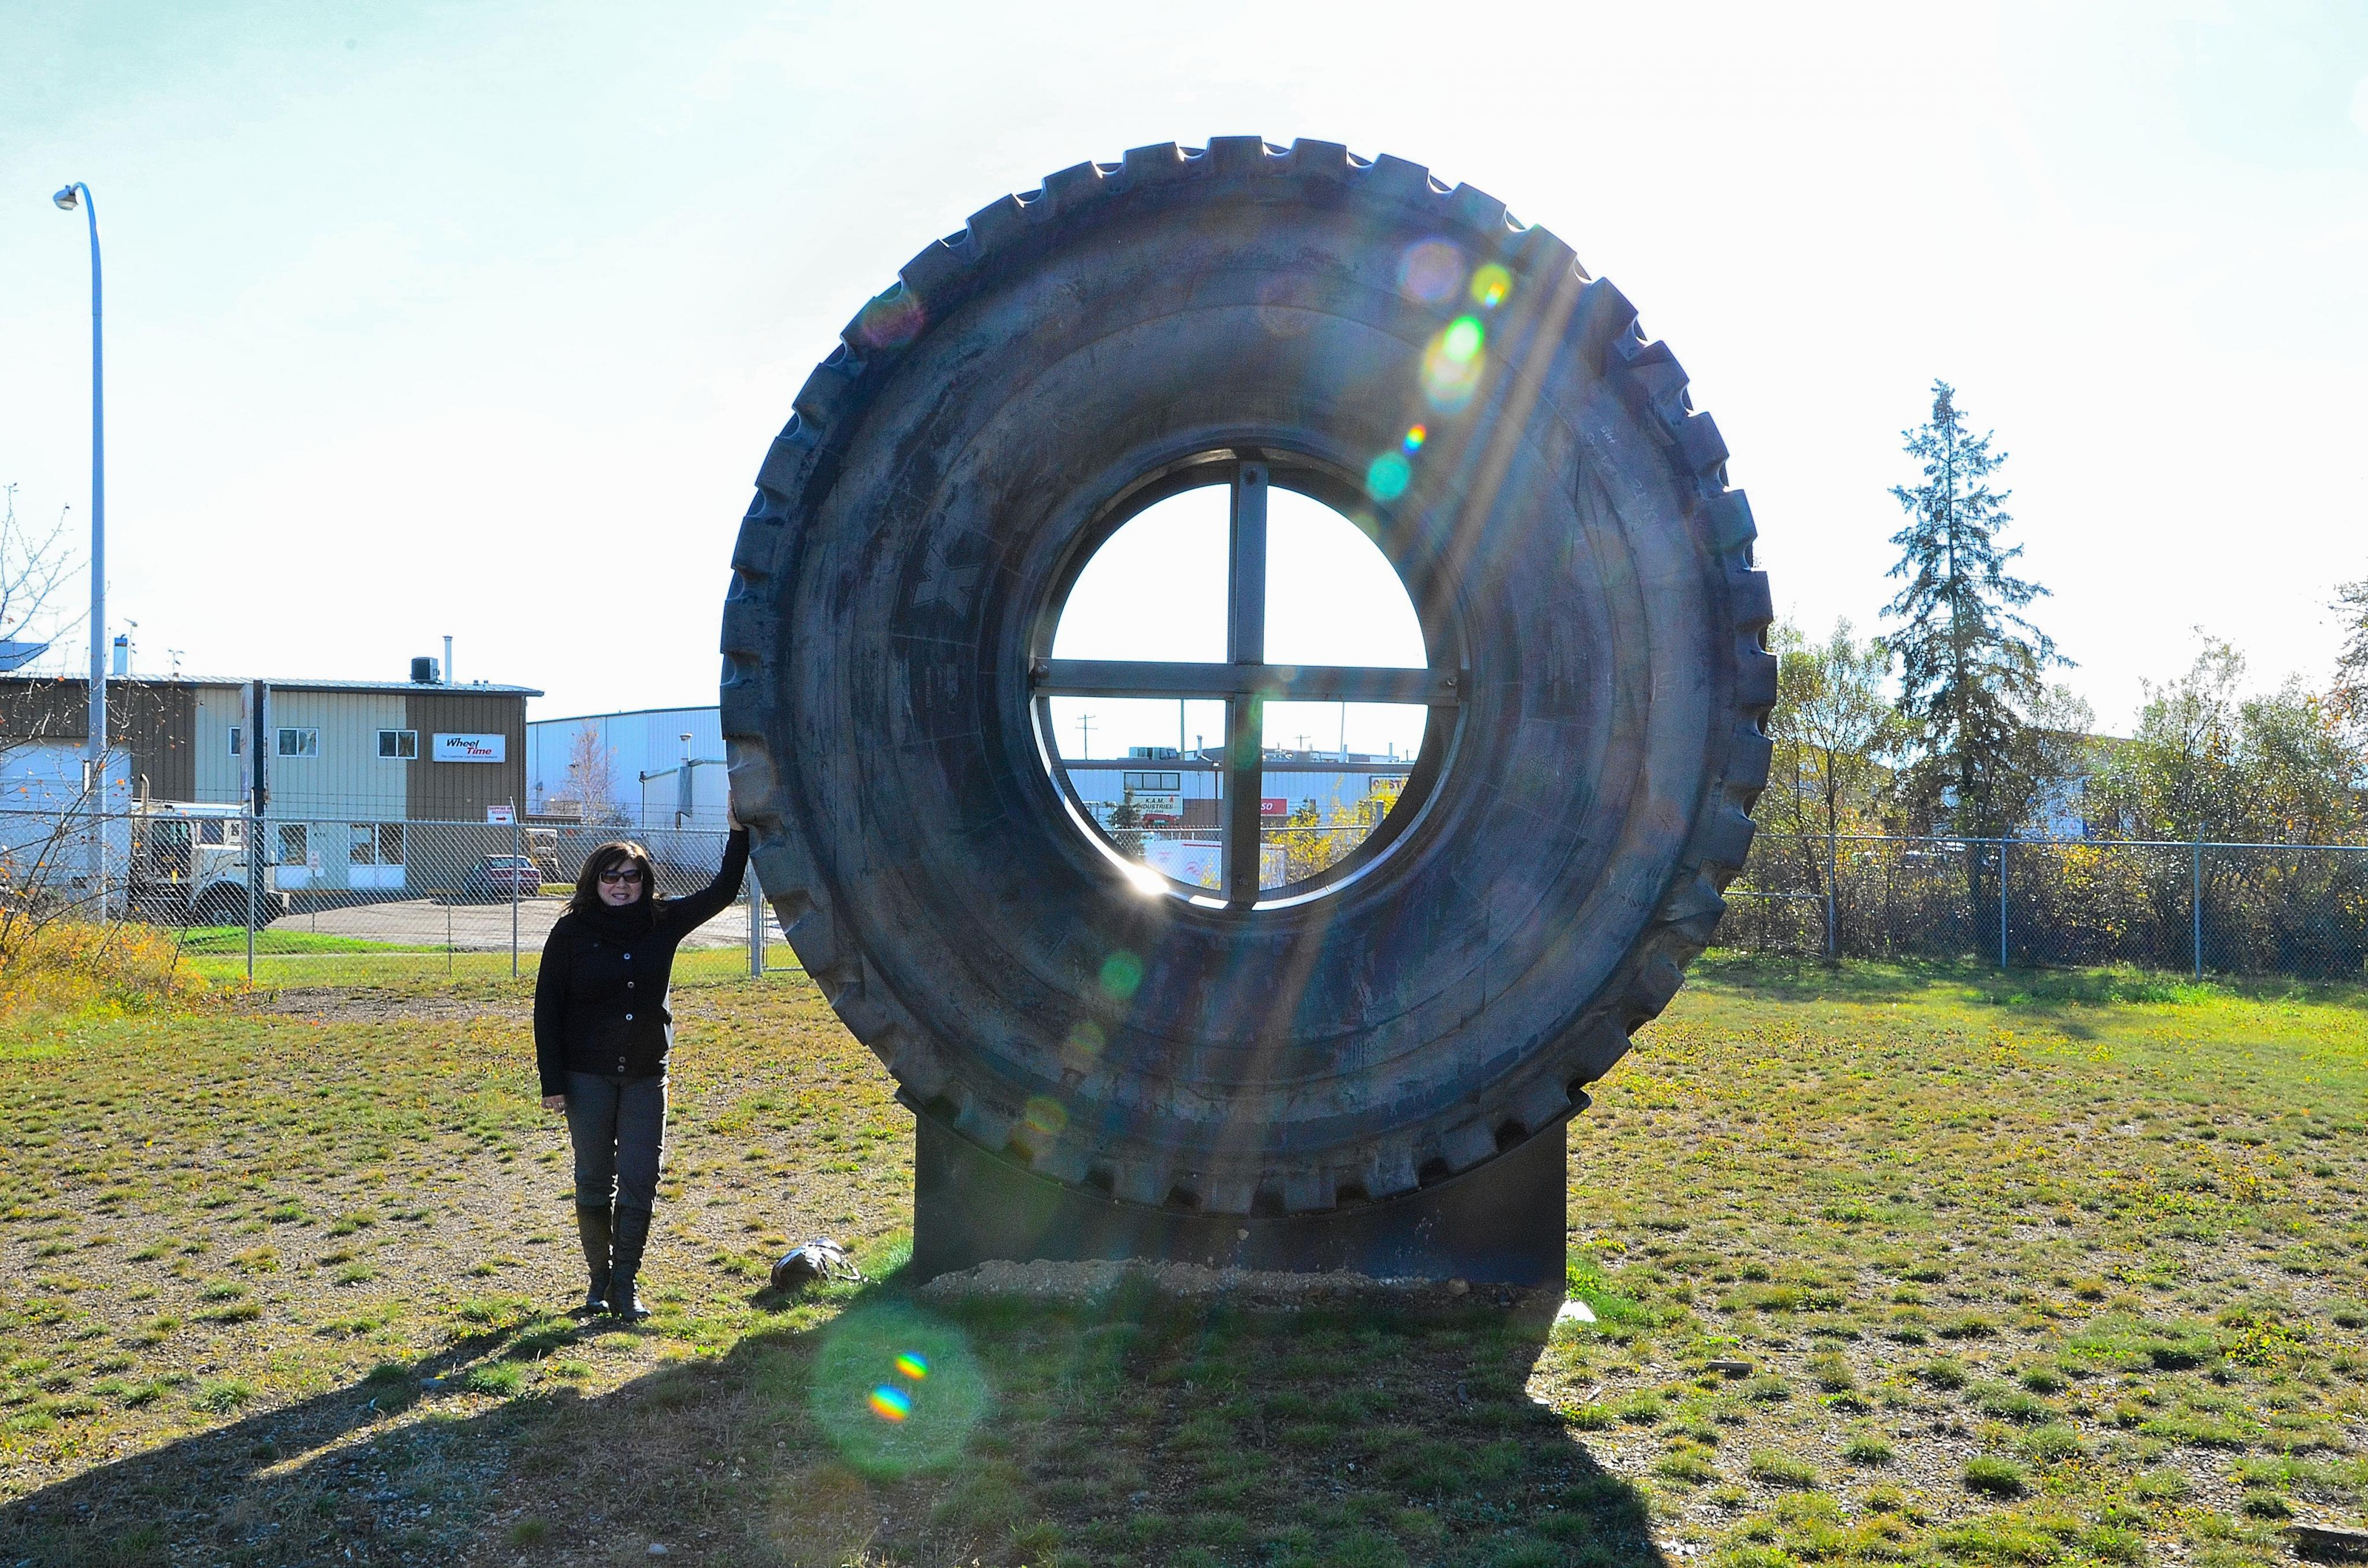 gail-with-a-caterpillar-797-tire-at-the-osdc.jpg